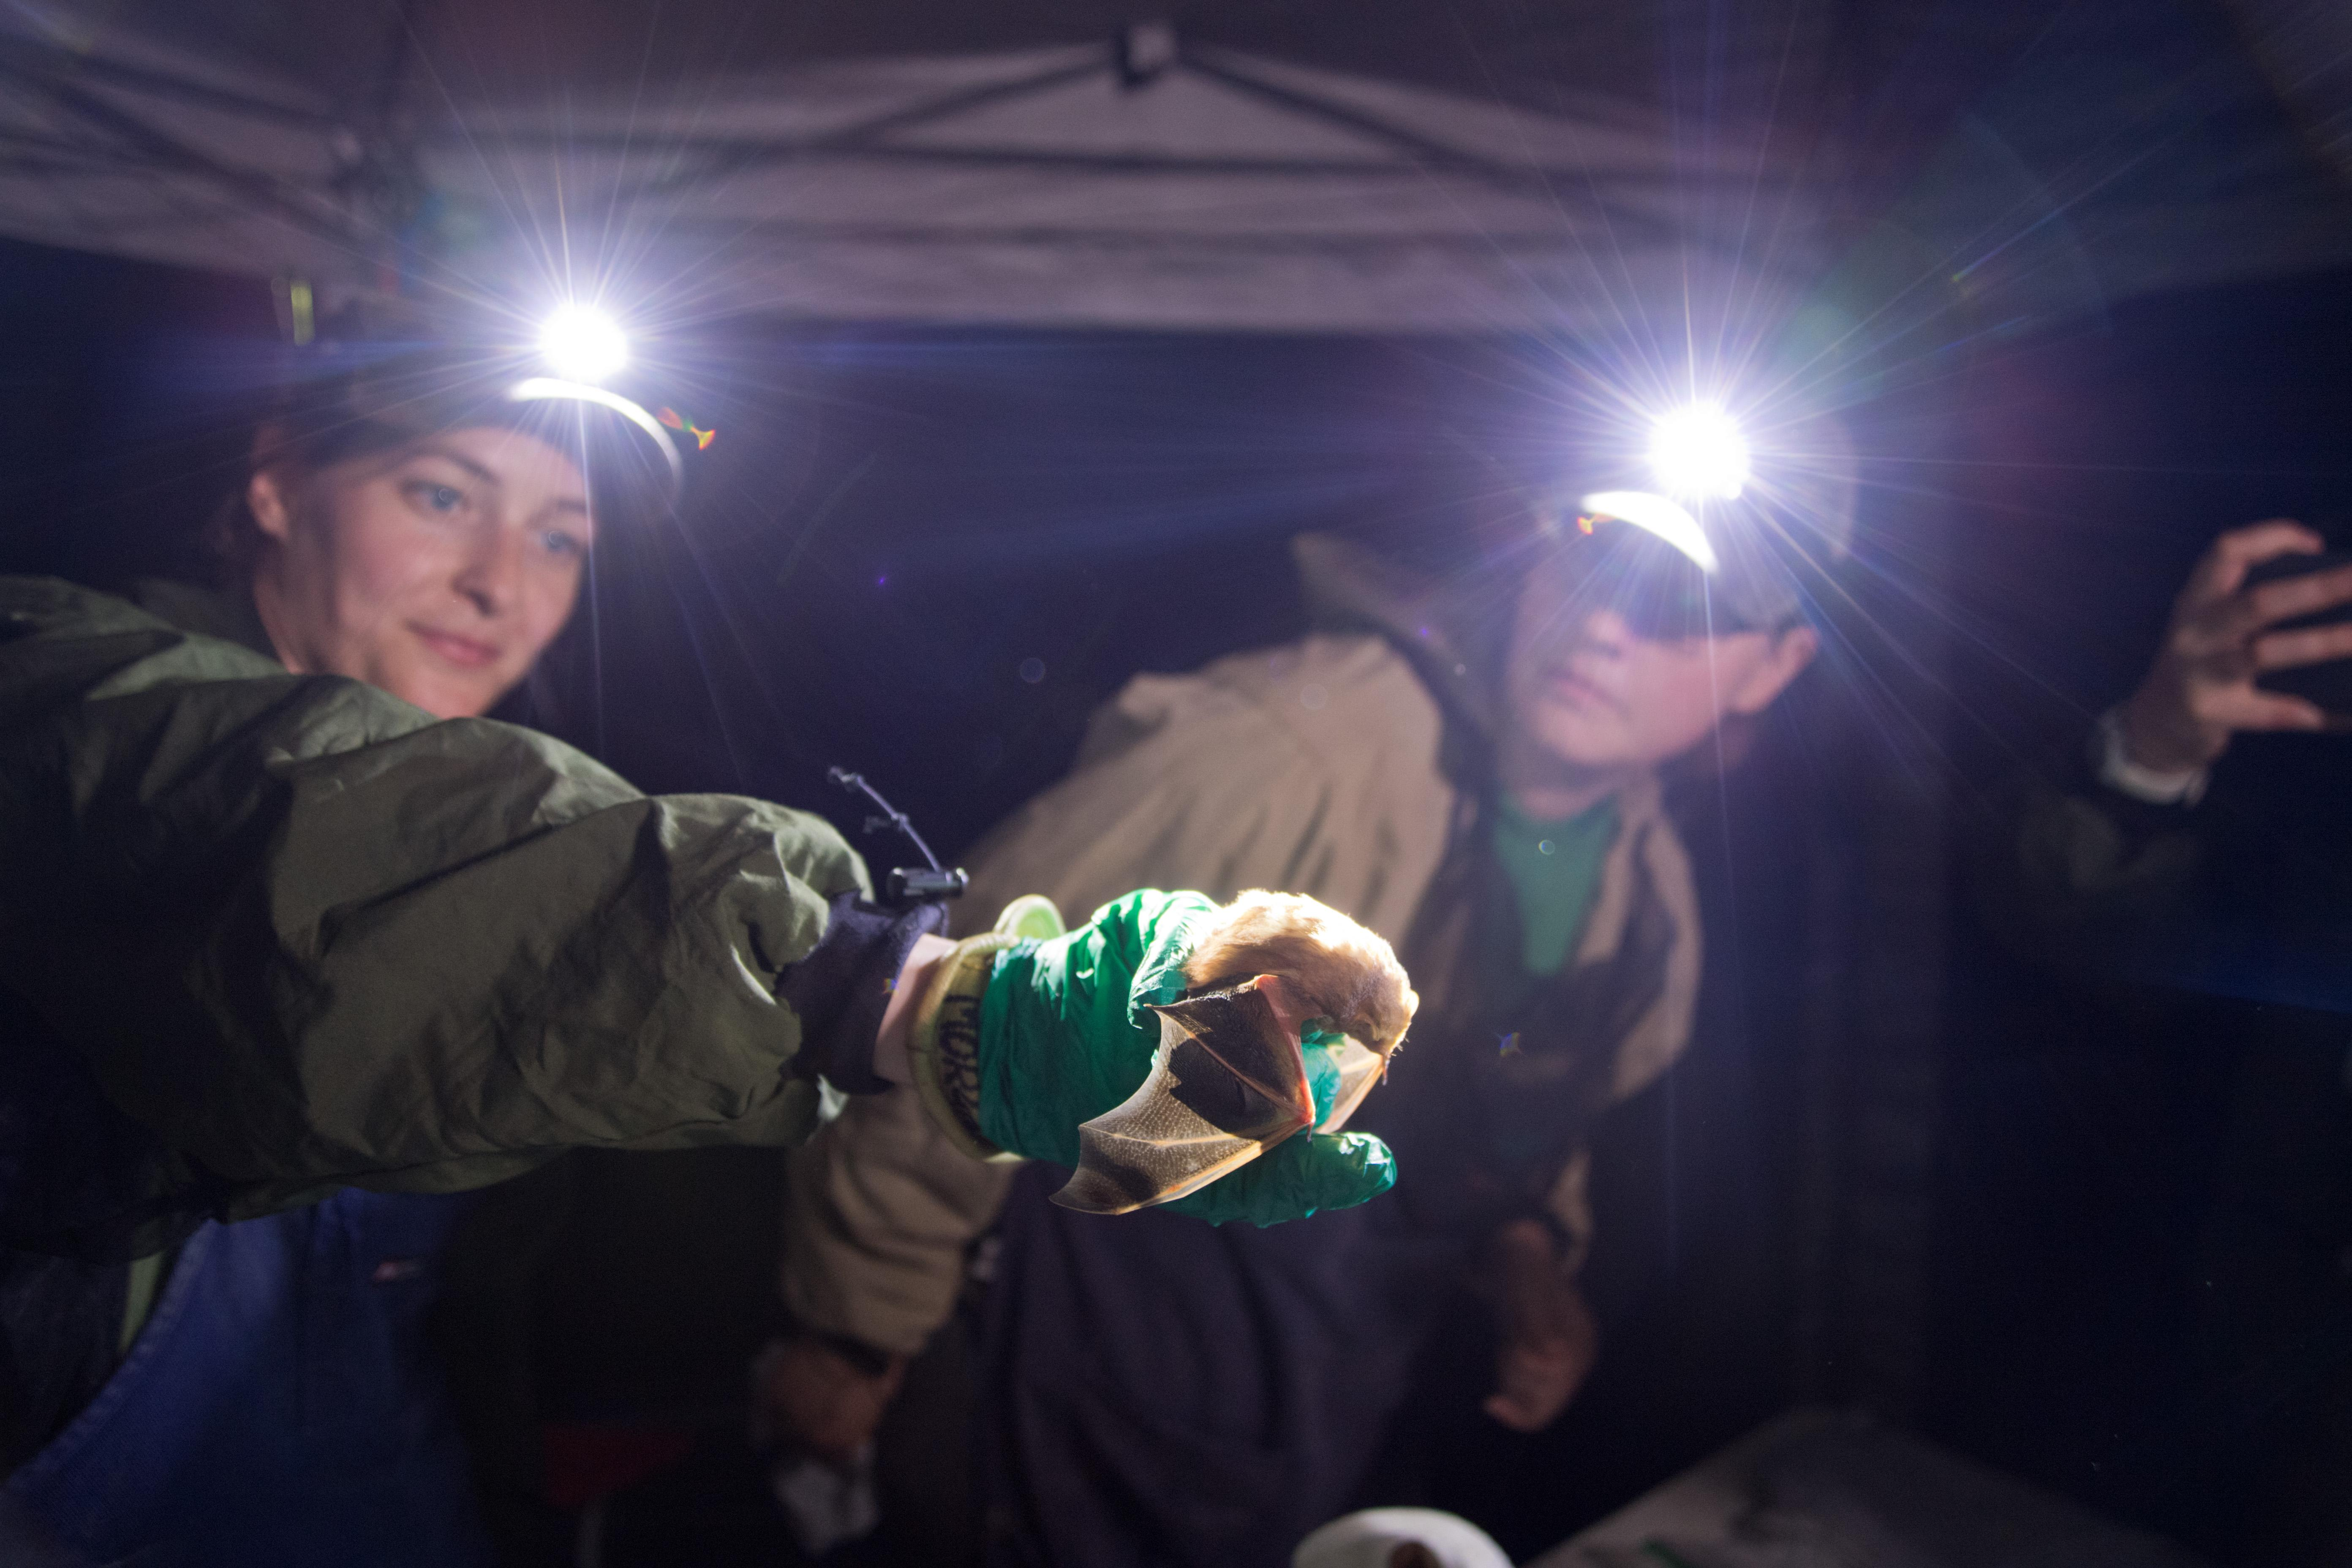 NRRI researchers with headlamps and a bat in their hand.